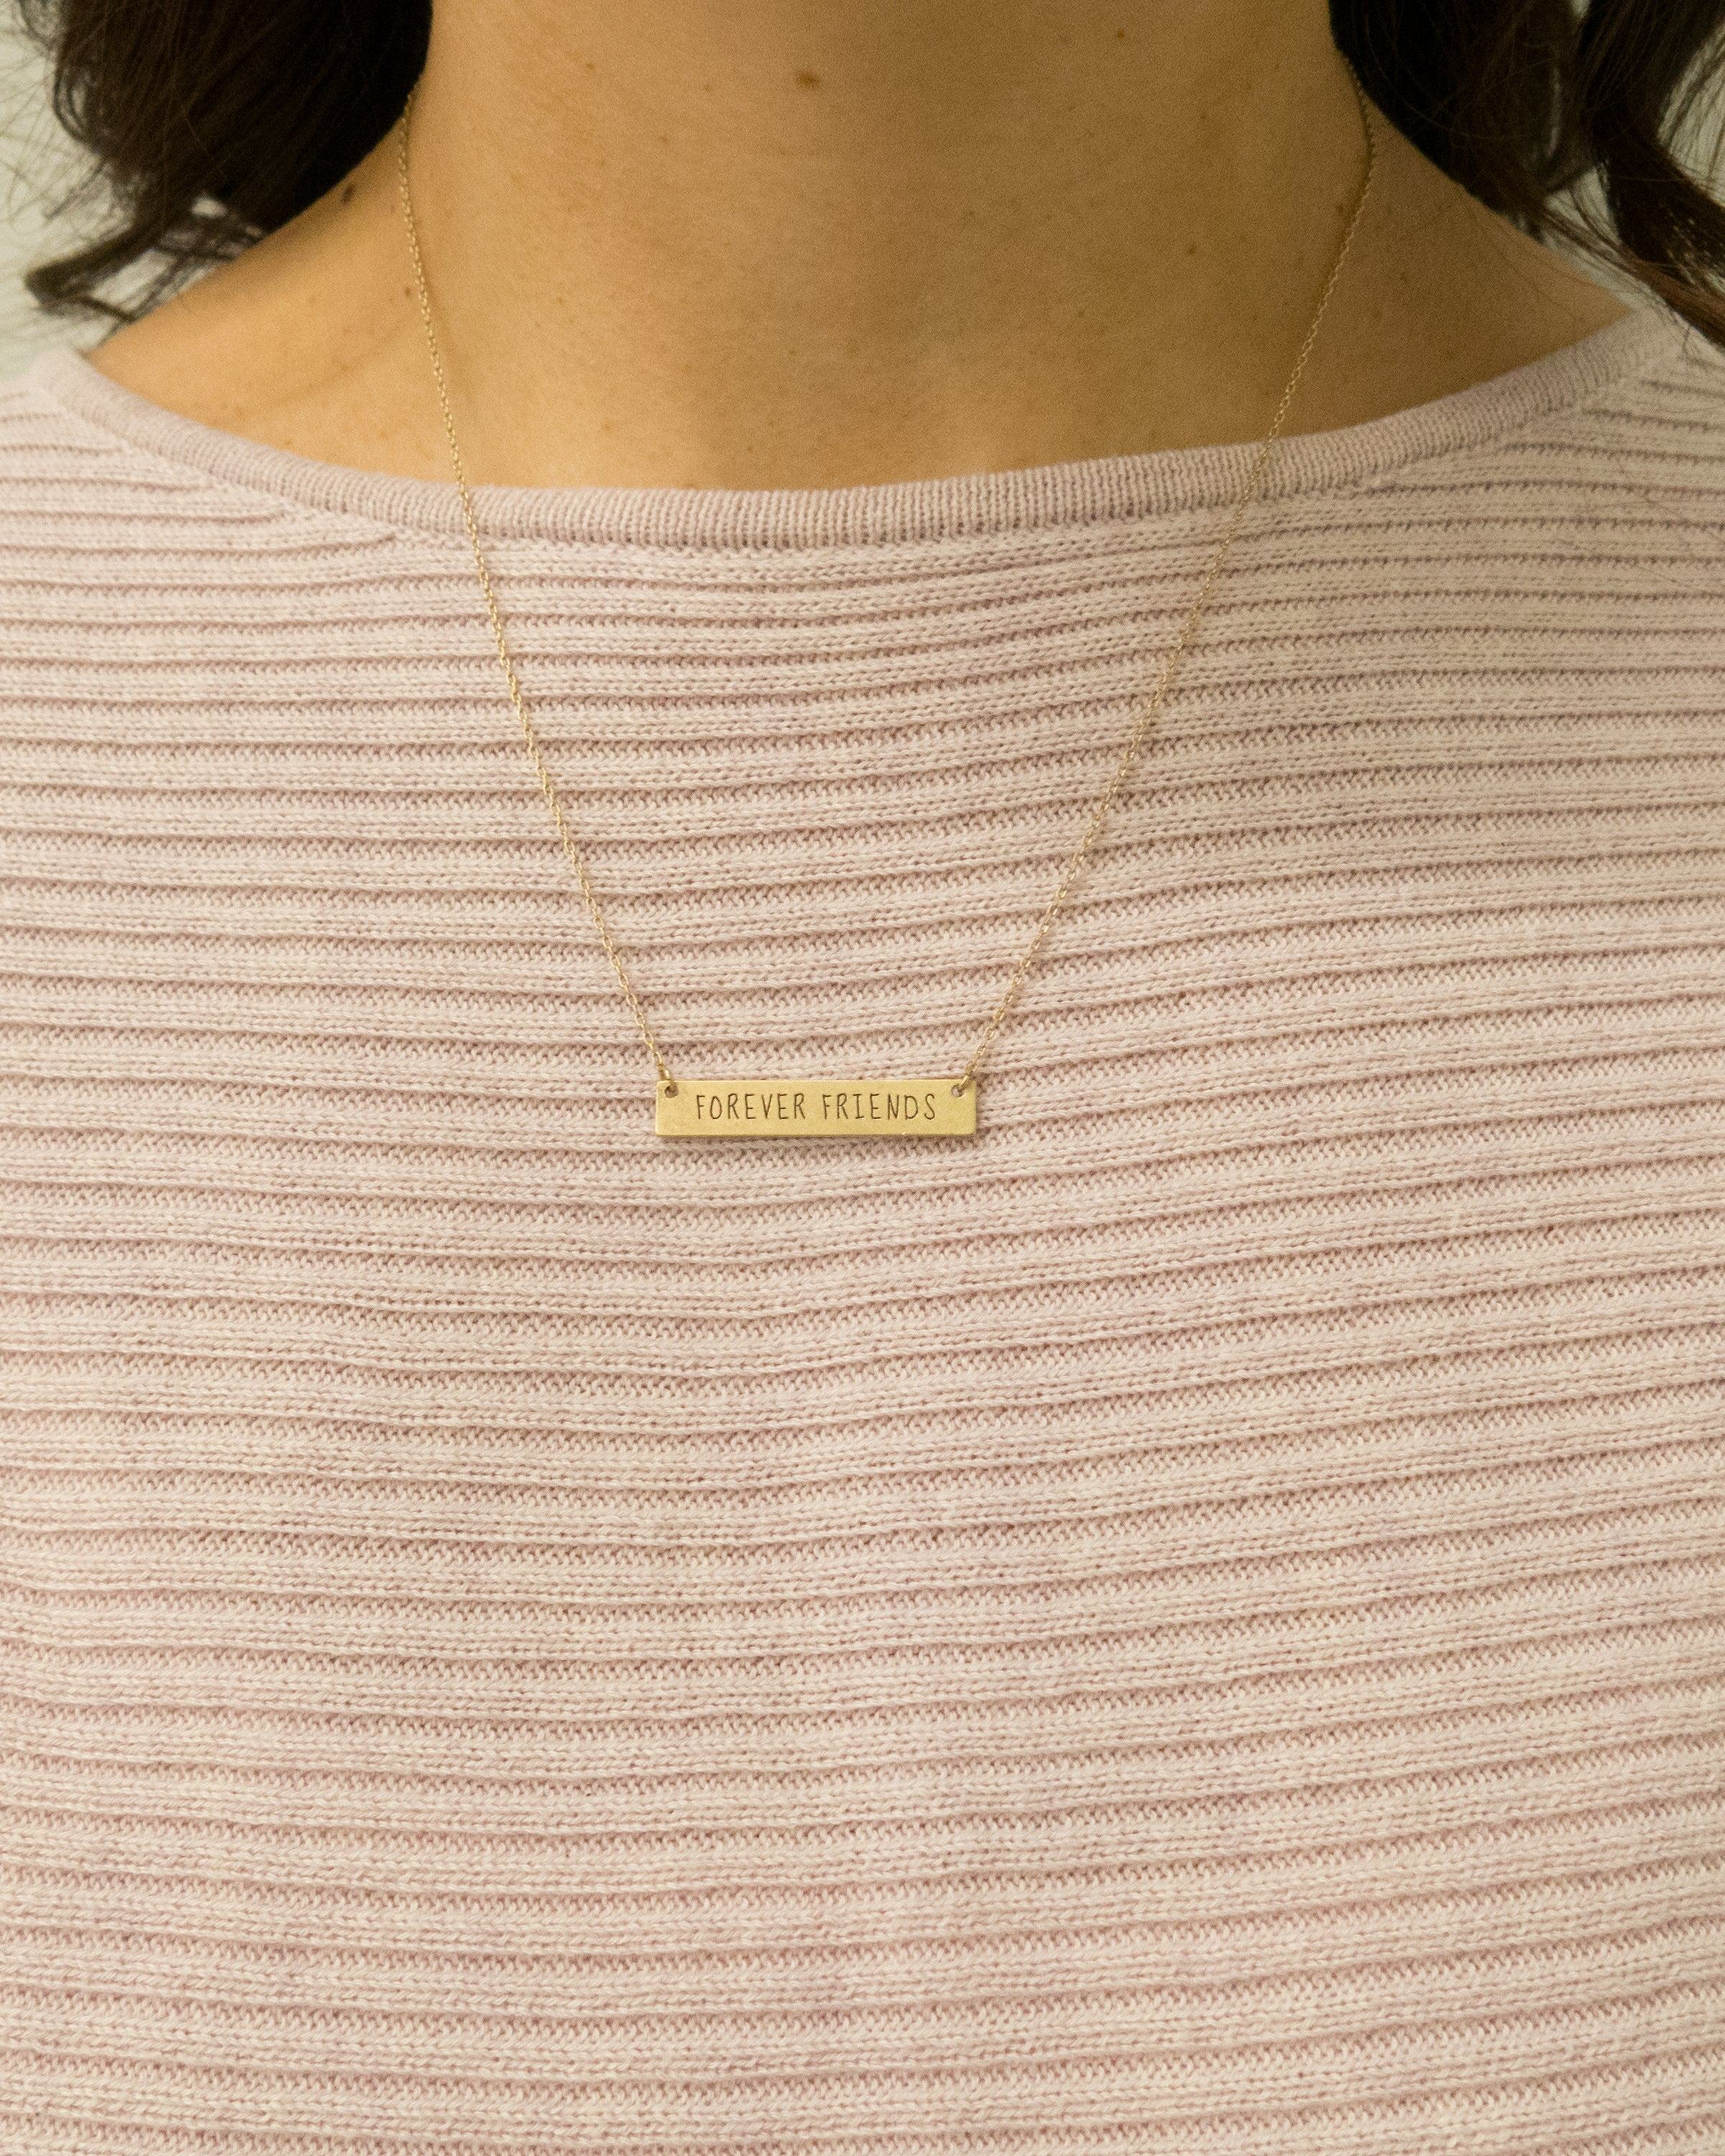 "Forever Friends Bar Necklace 18"" in length"